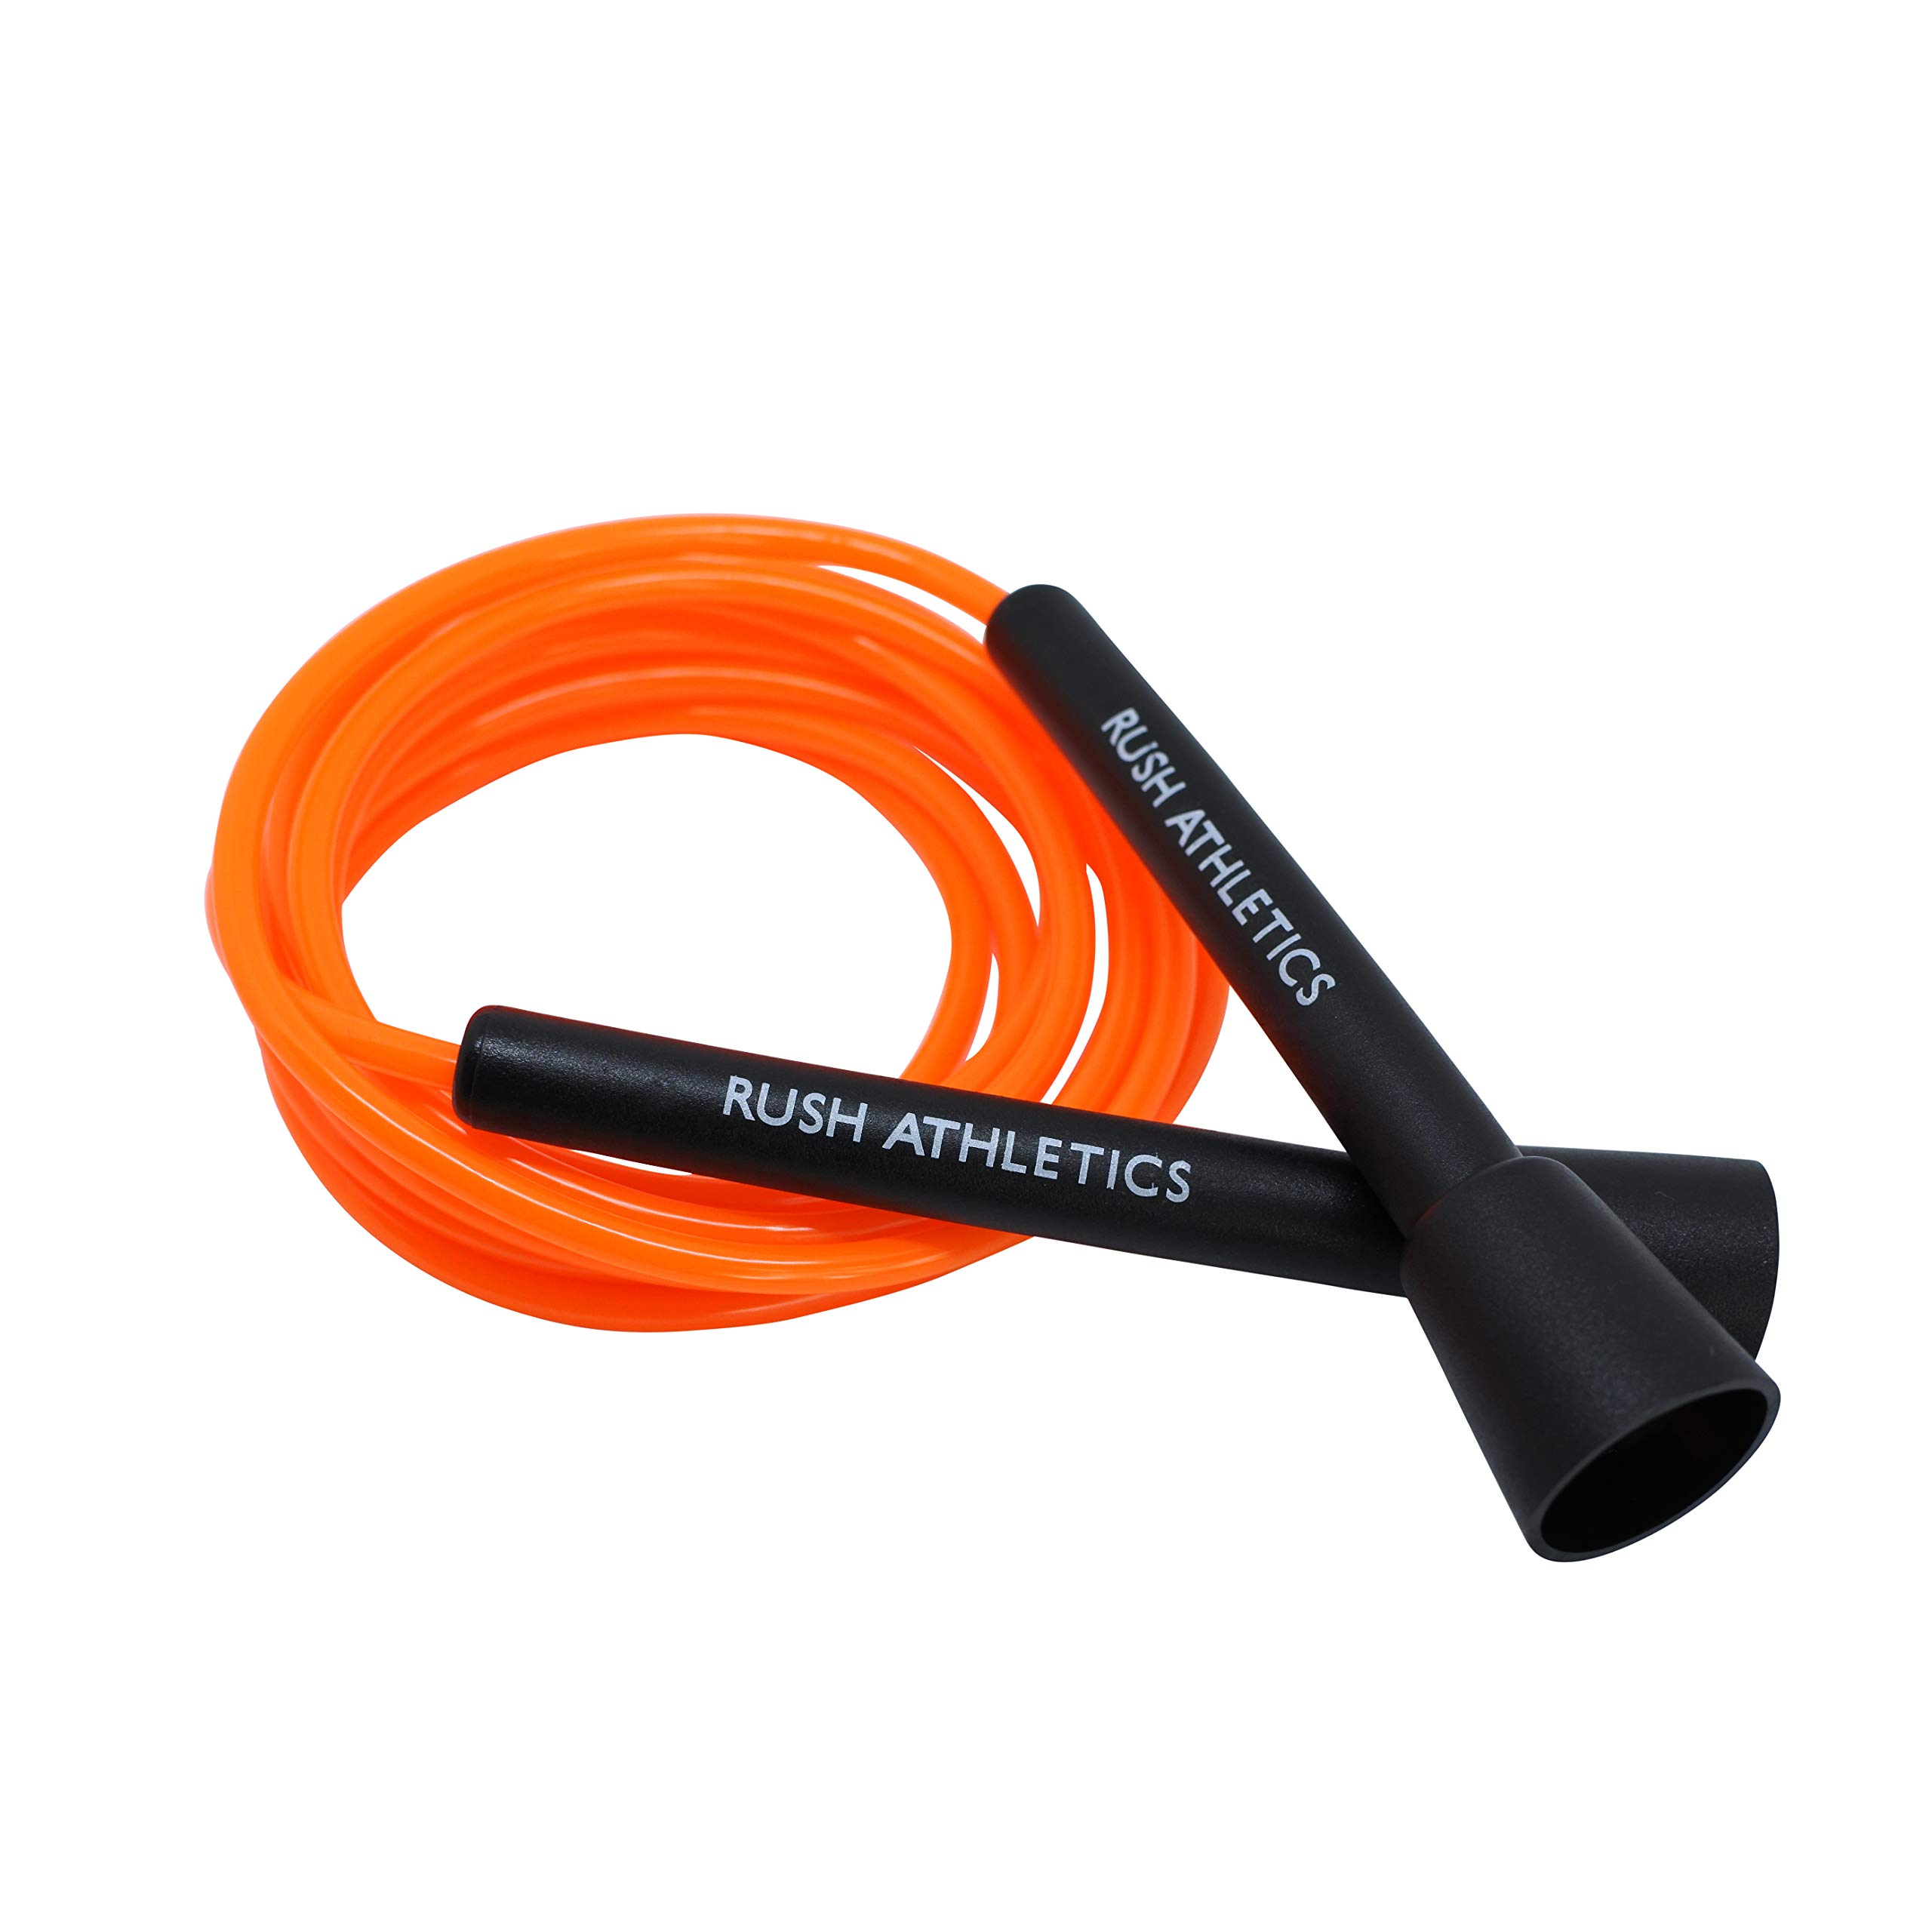 RUSH ATHLETICS Speed Rope NEON Orange- Skipping Rope, Best for Boxing MMA Cardio Fitness Training - Speed - Adjustable 11ft Jump Rope Sold